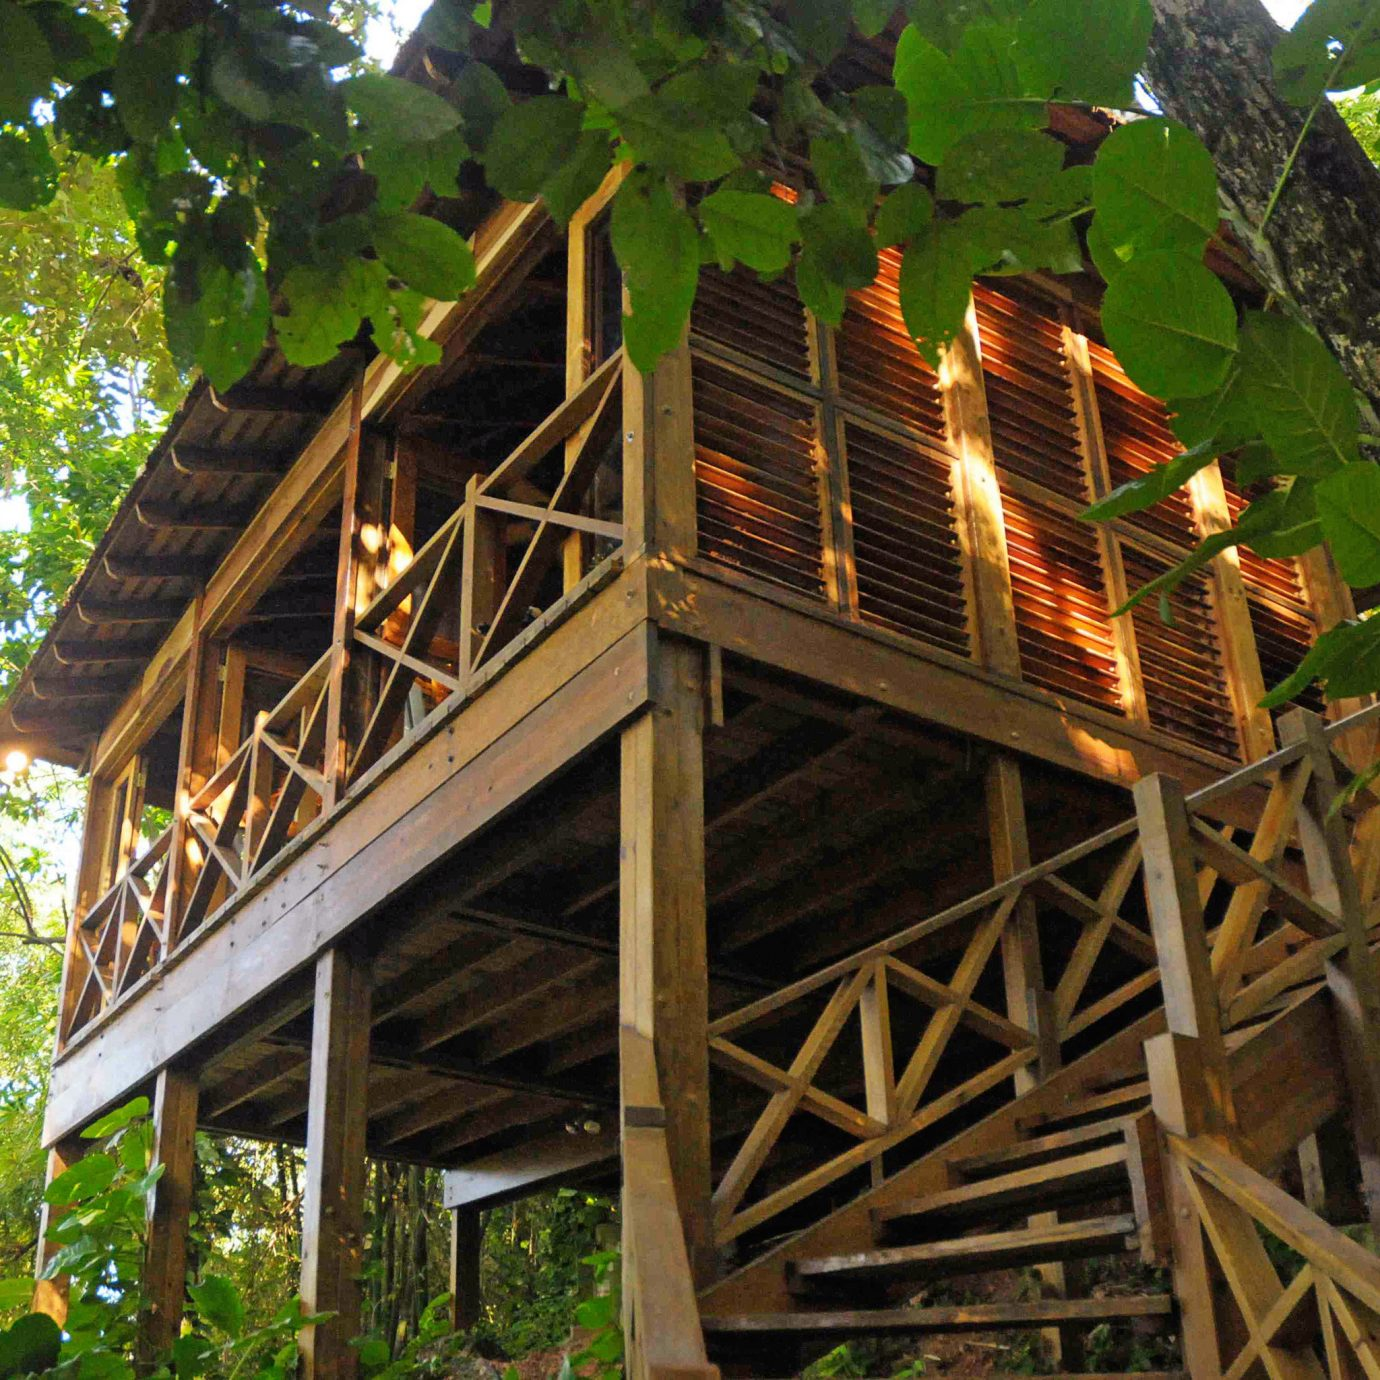 Island Jungle Treehouse tree tree house outdoor structure agriculture backyard log cabin cottage hut rainforest